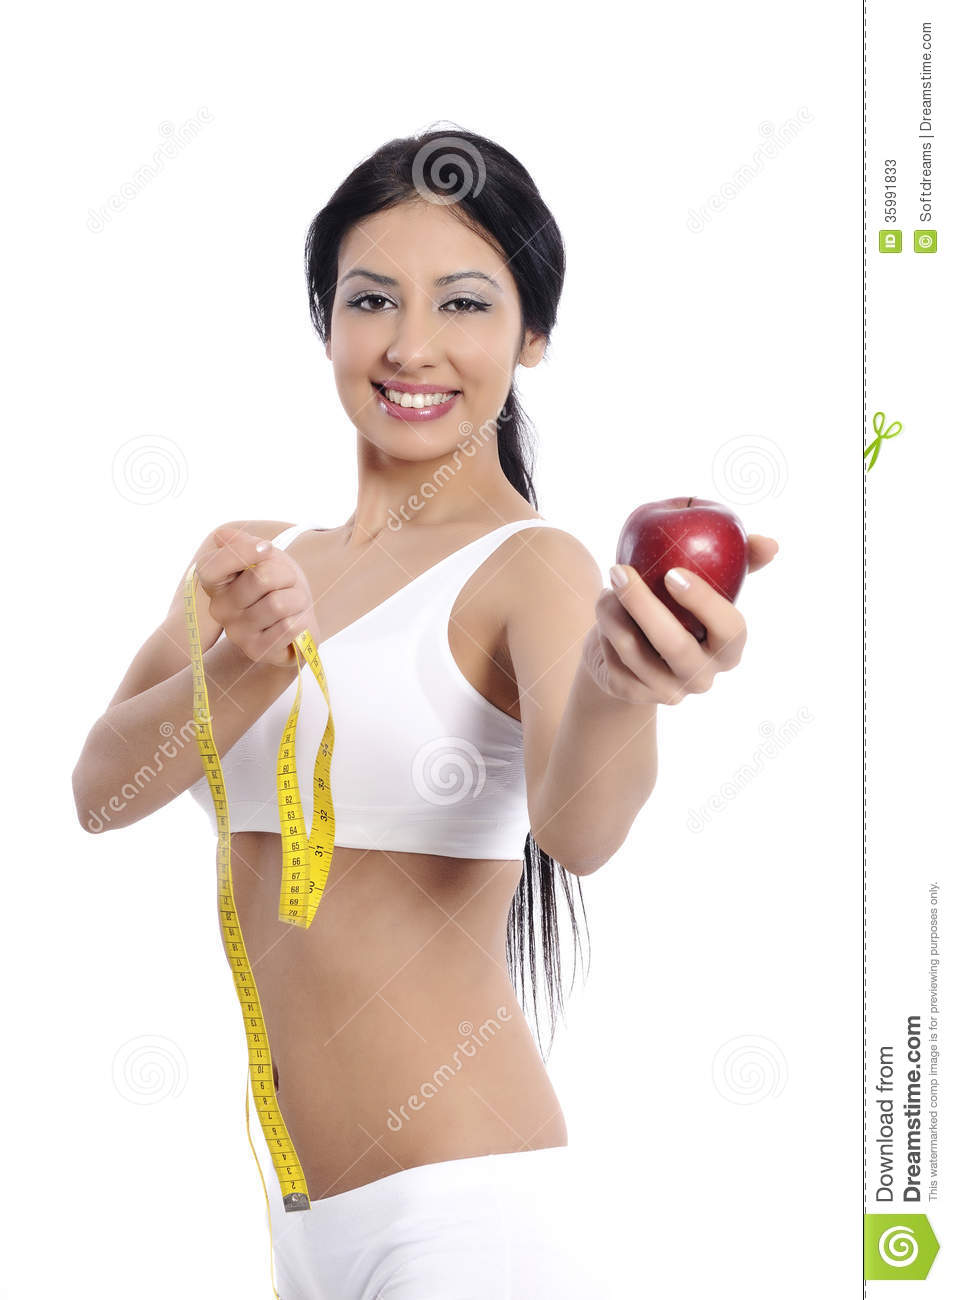 Young Woman Measuring Her Breast With A Measuring Tape Stock Photos